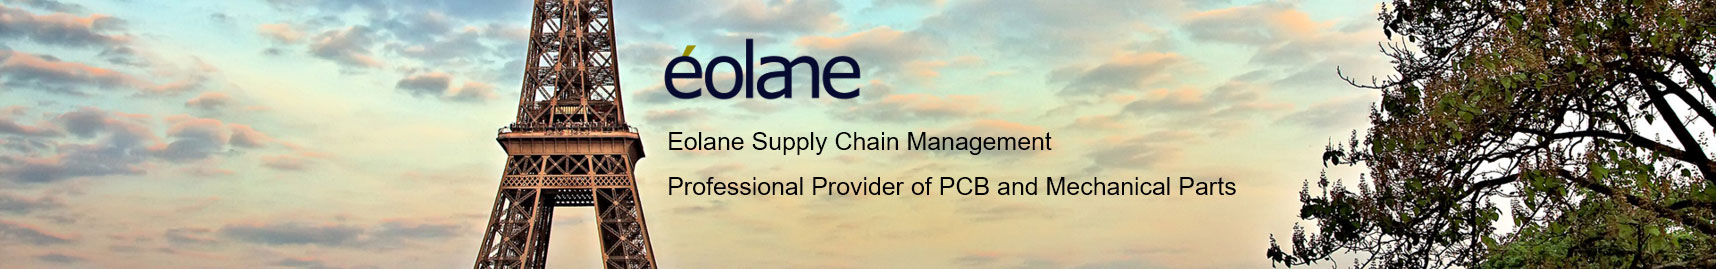 eolane supply chain management professional european leader in PCB&Technical parts